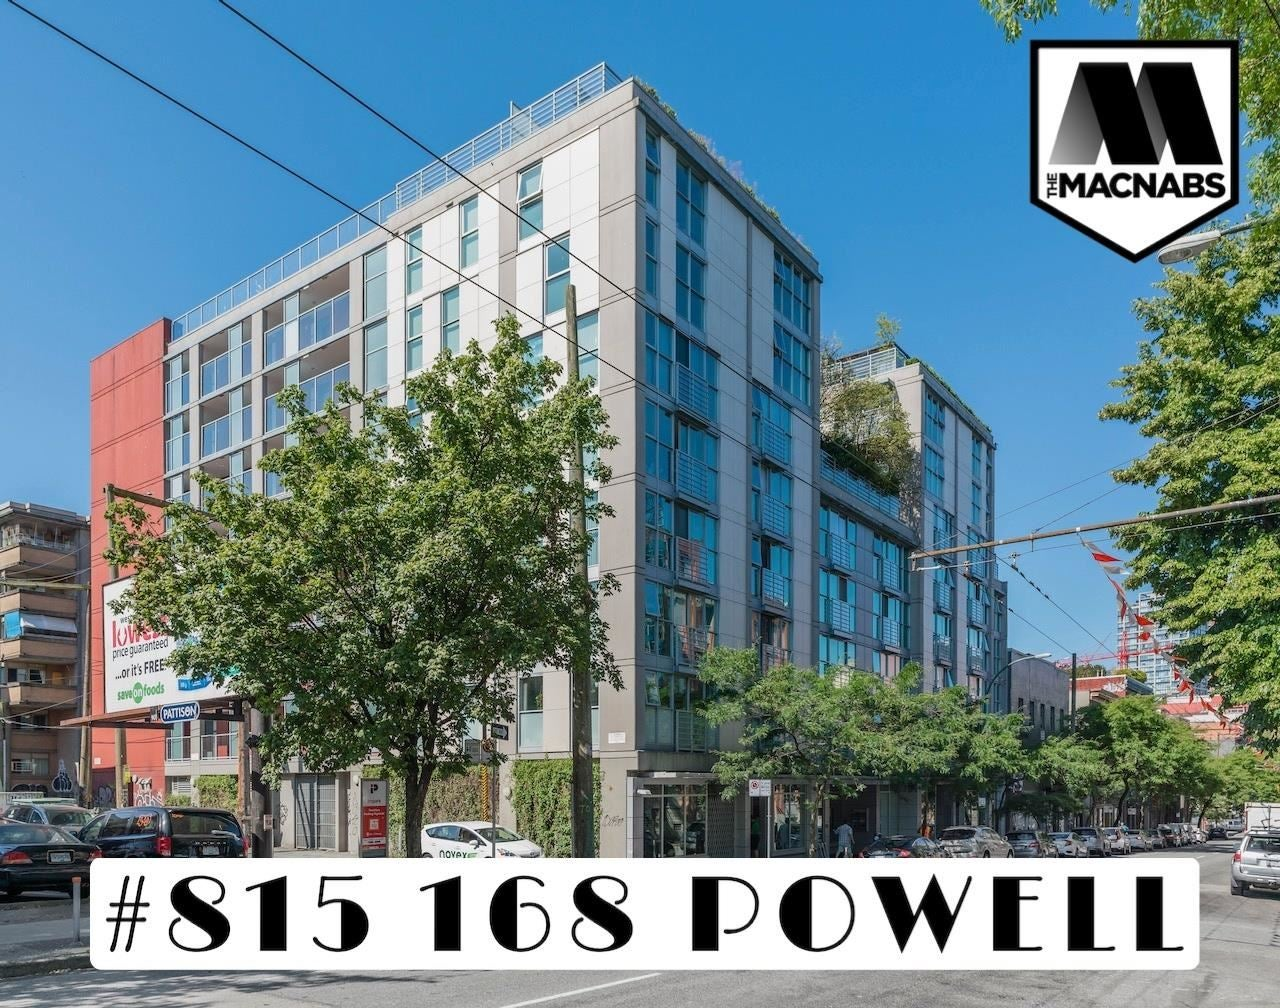 815 168 POWELL STREET - Downtown VE Apartment/Condo for sale, 1 Bedroom (R2599942) - #1